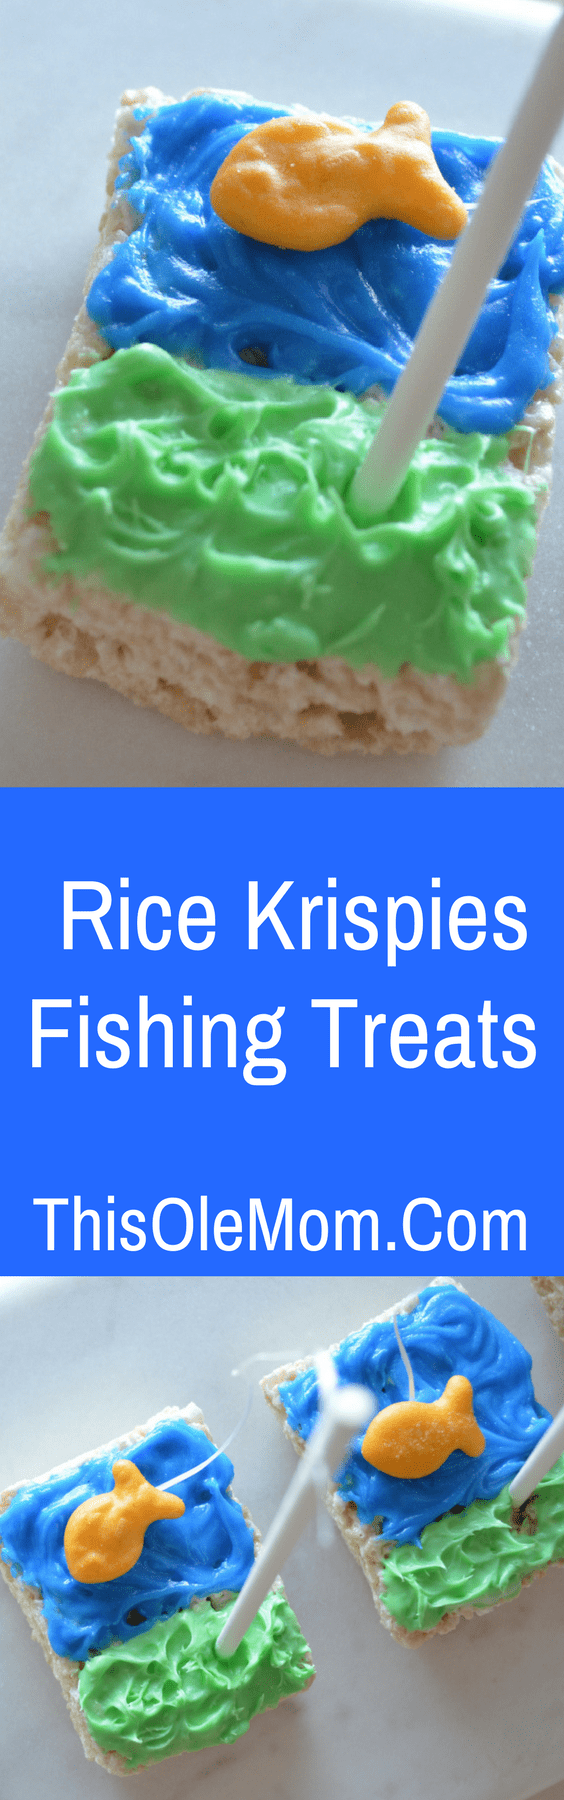 Rice Krispies Fishing Treats